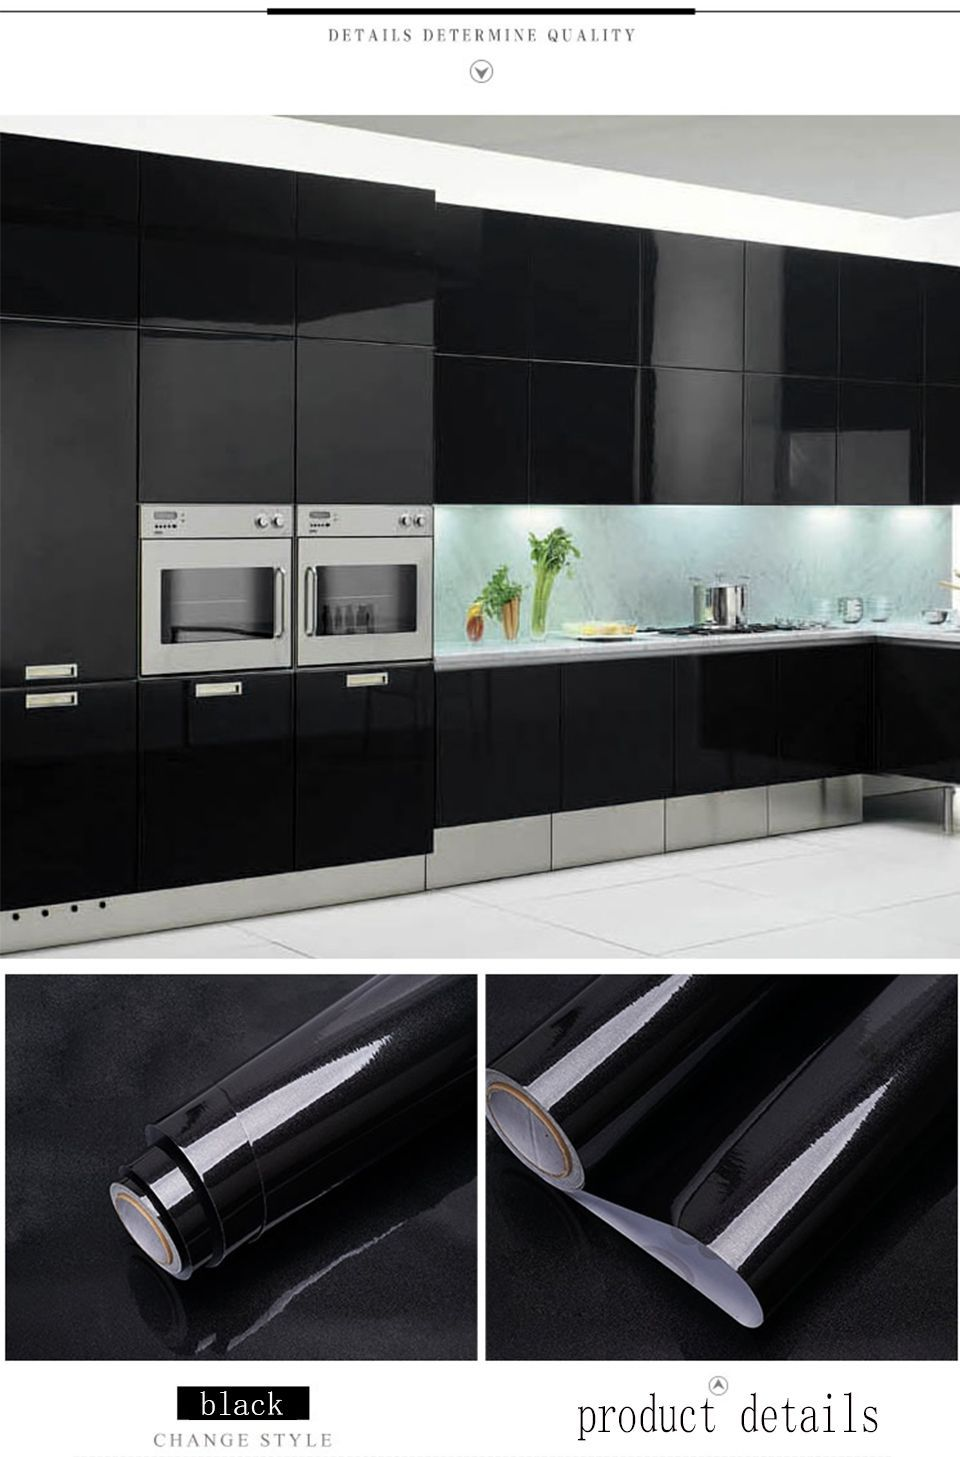 Black Wood Grain Marble Solid Self Adhesive Wallpaper For Kitchen Cabinets Co Wallpaper For Kitchen Cabinets Kitchen Cabinets And Countertops Kitchen Wallpaper